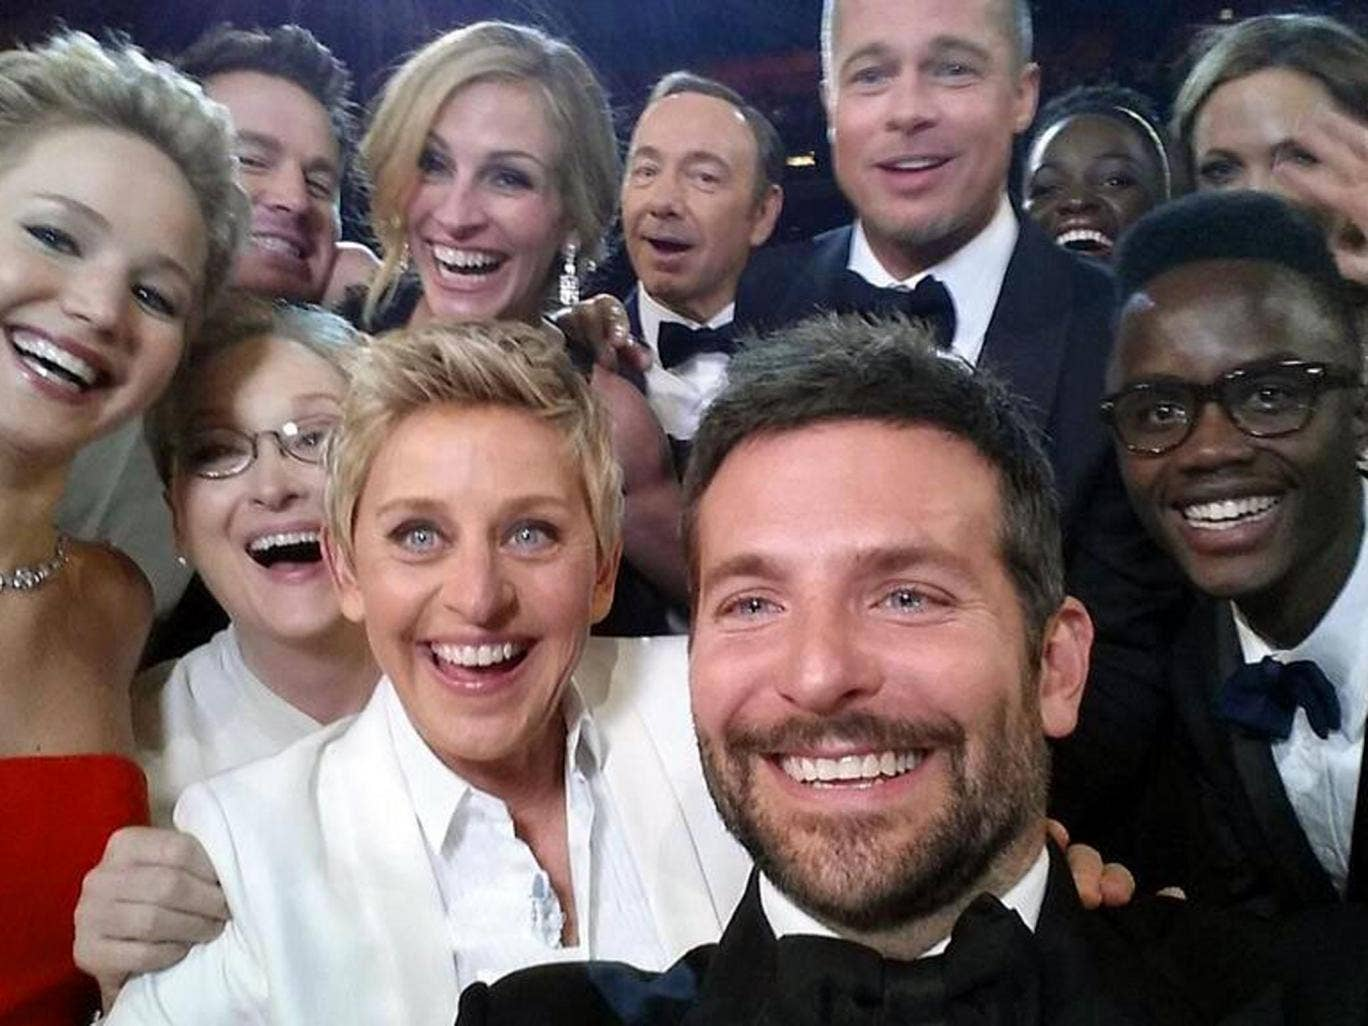 Actors front row from left, Jared Leto, Jennifer Lawrence, Meryl Streep, Ellen DeGeneres, Bradley Cooper, Peter Nyongío Jr., and, second row, from left, Channing Tatum, Julia Roberts, Kevin Spacey, Brad Pitt, Lupita Nyongío and Angelina Jolie as they pose